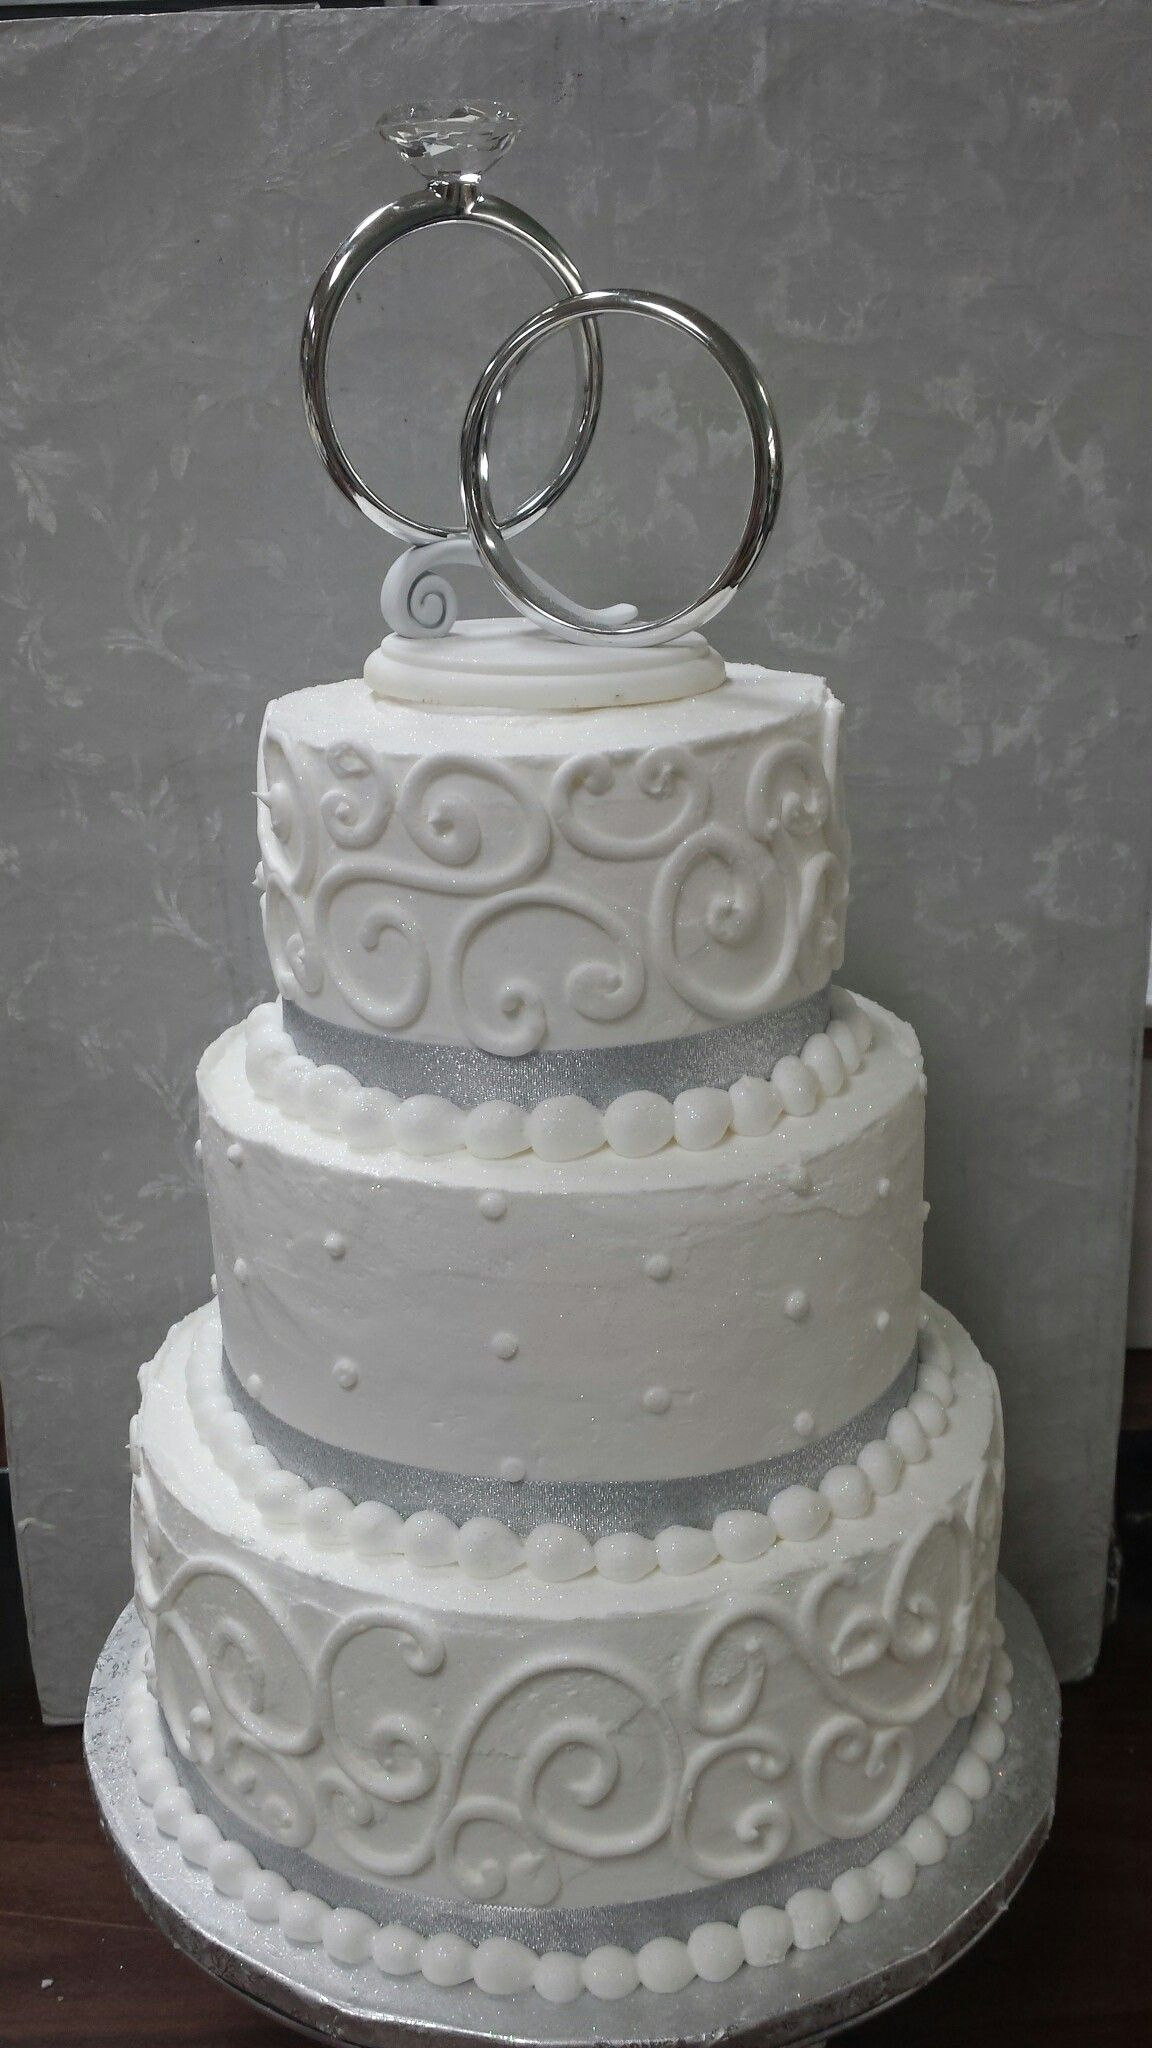 giant wedding ring Modern wedding cake Giant wedding ring topper and large swirls to match Soft Silver